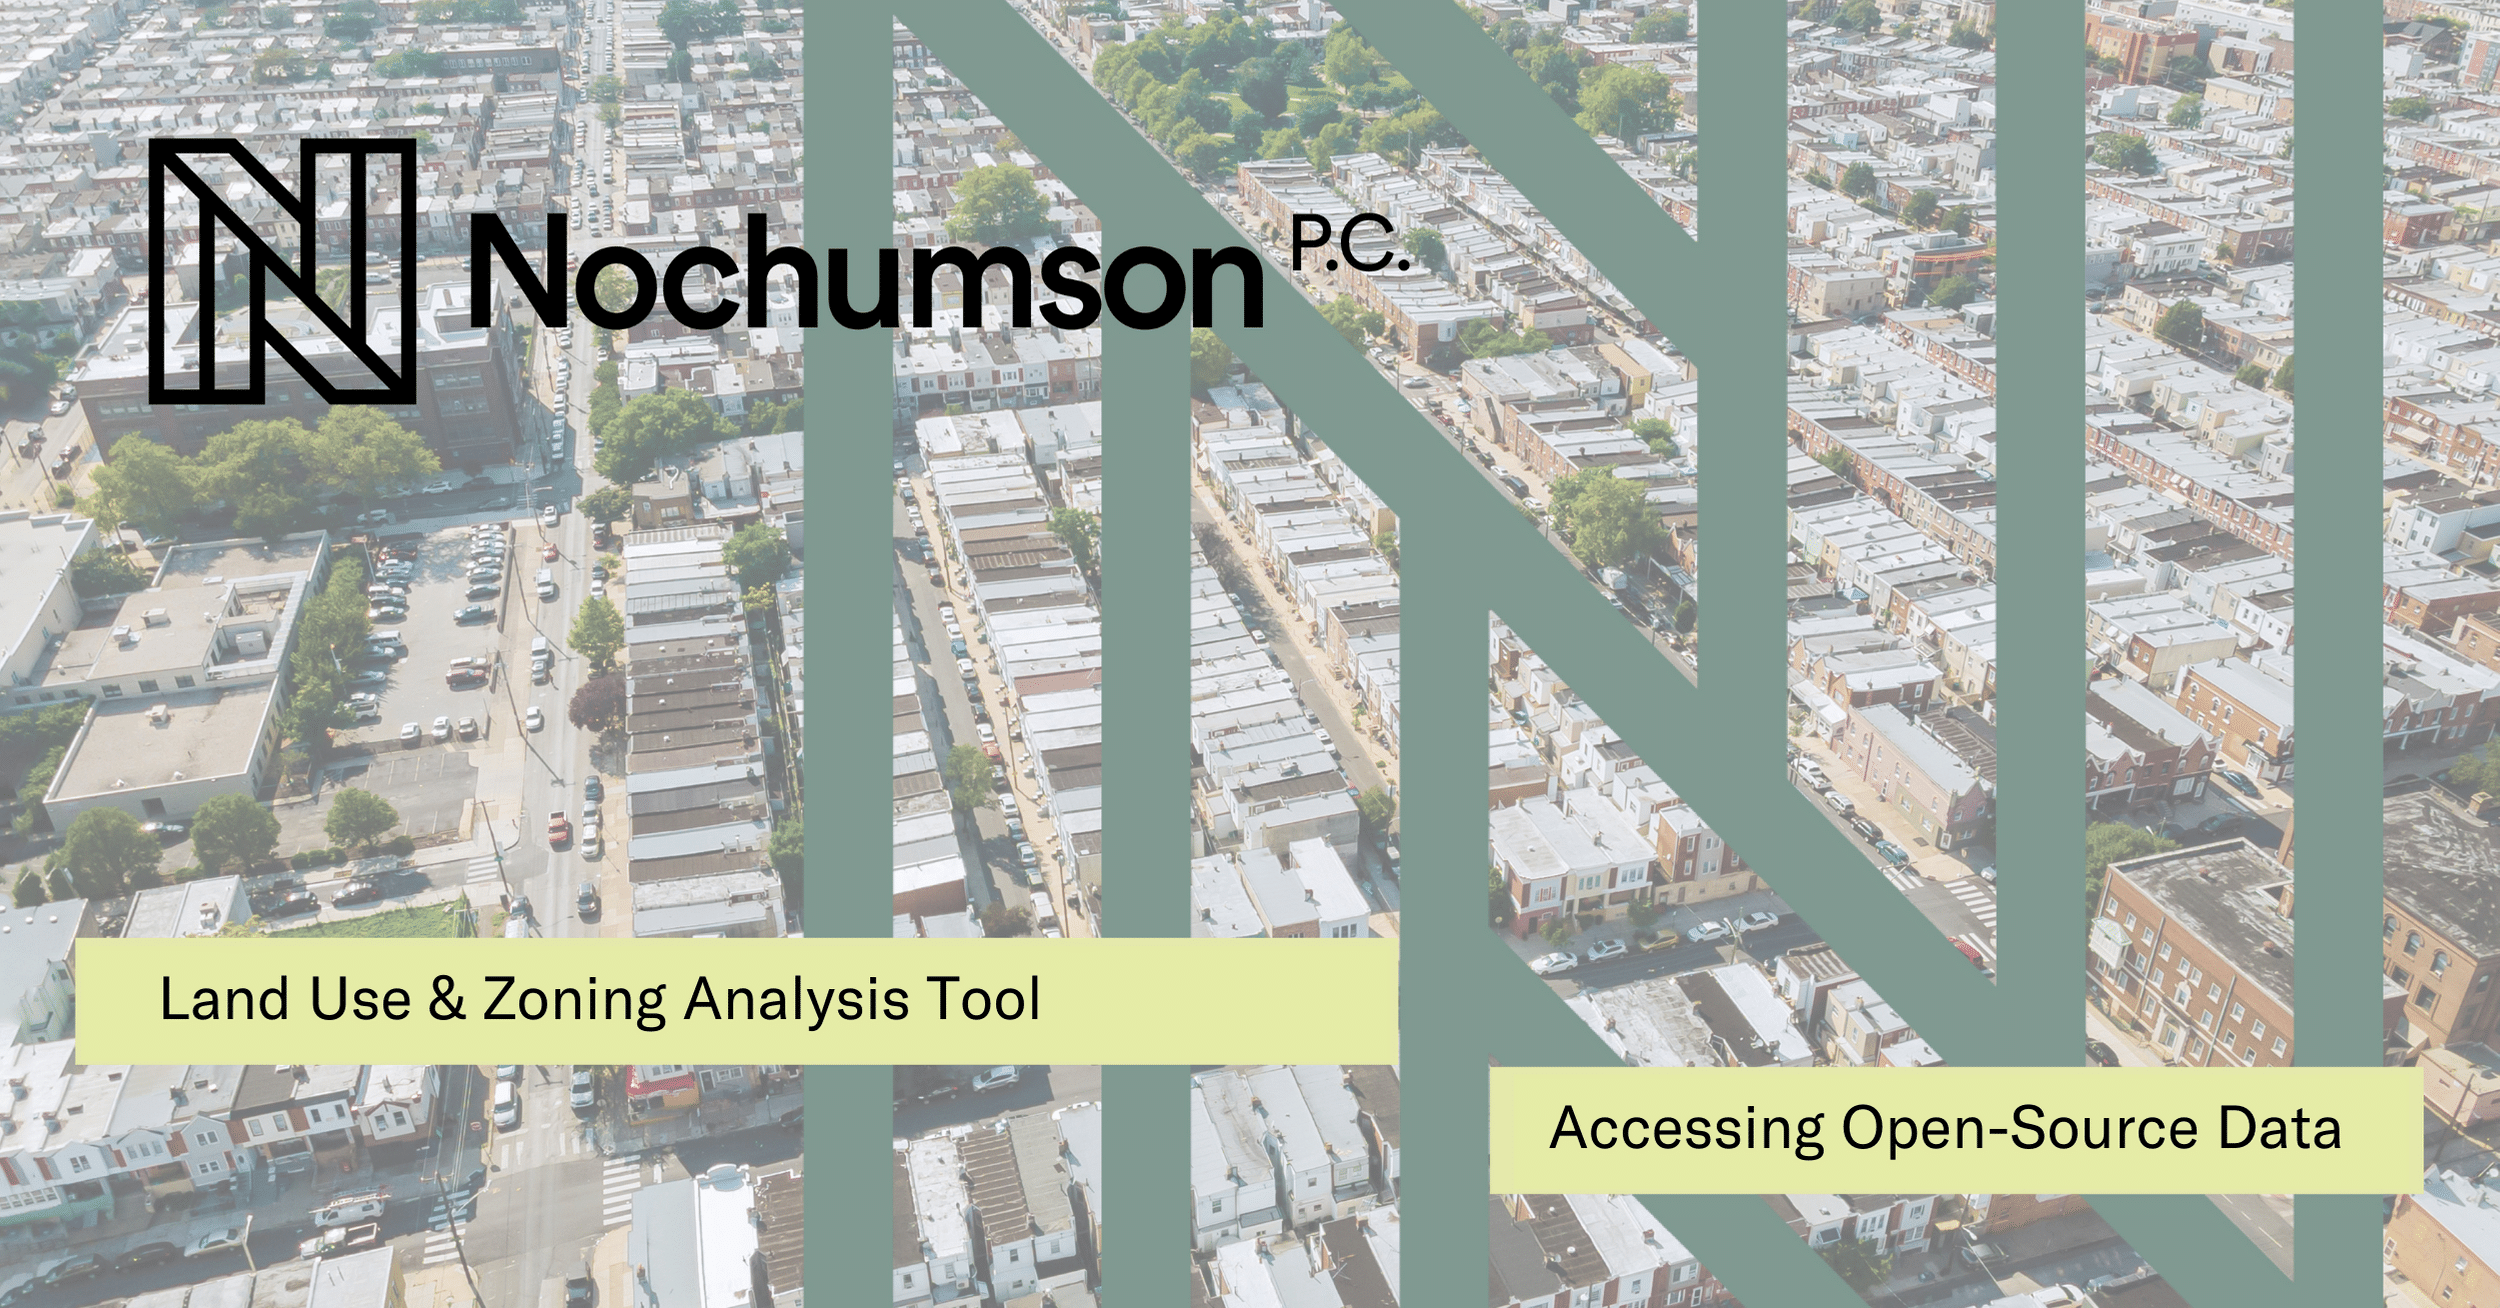 How the Nochumson P.C. Land Use and Zoning Tool Can Help You!